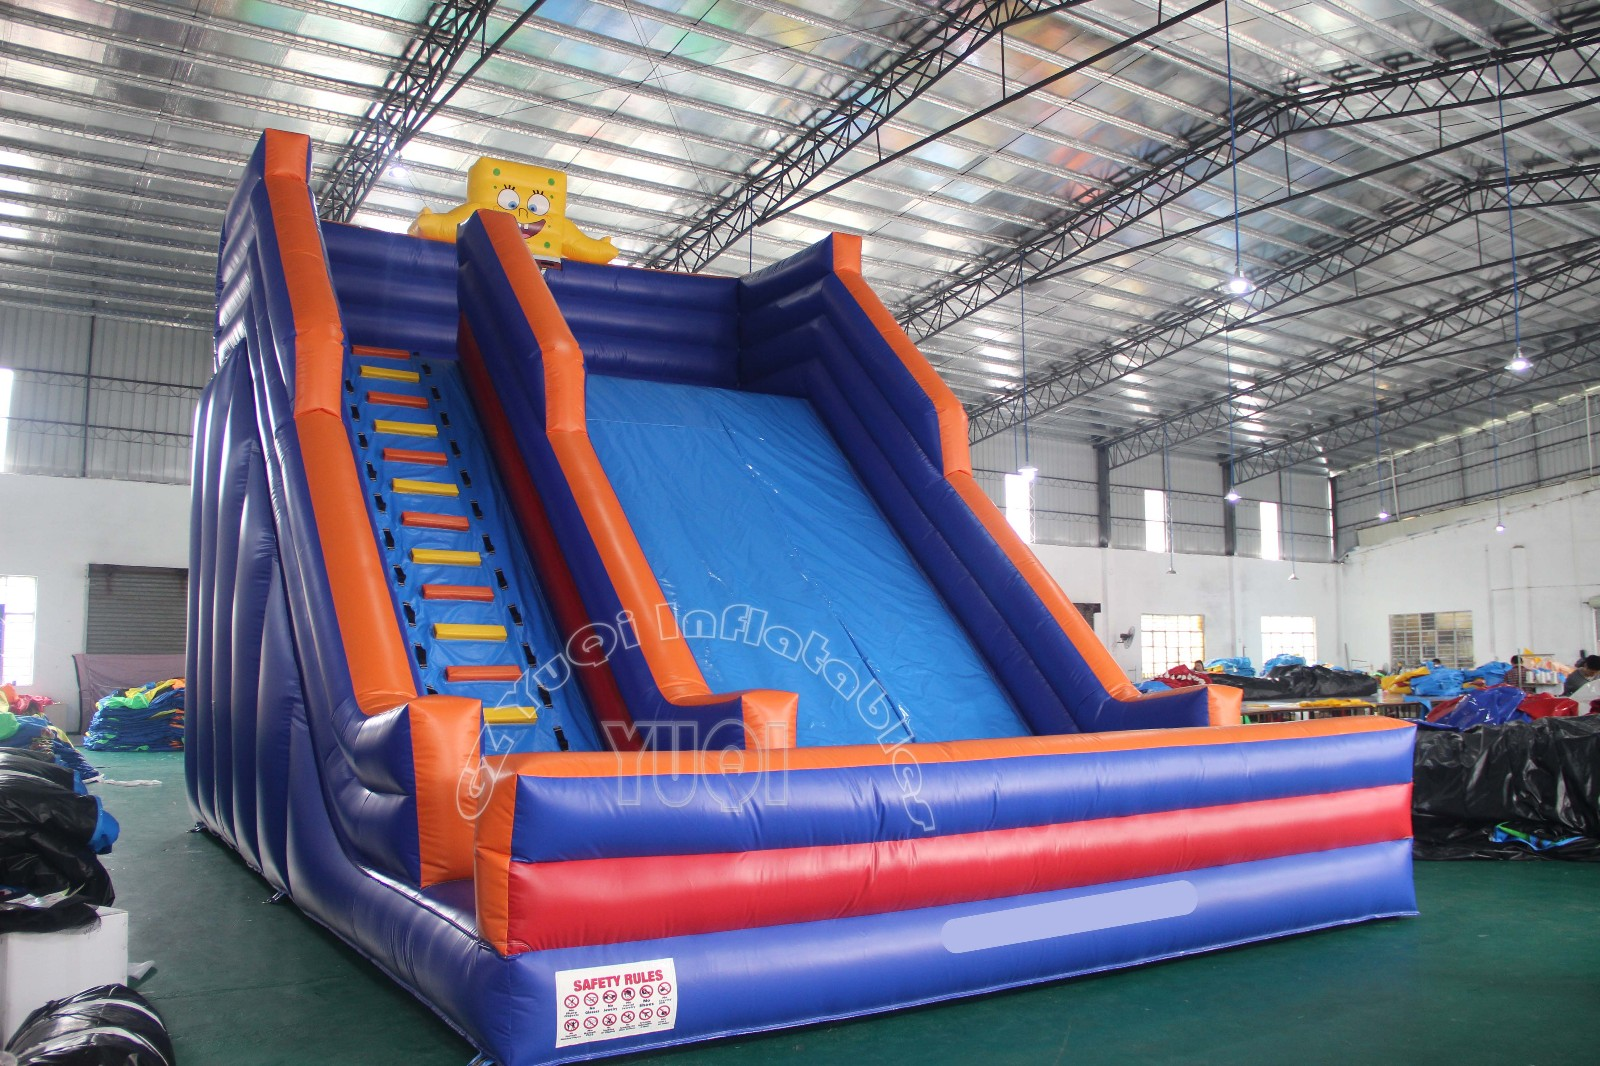 YUQI-Giant 30 Foot Inflatable Water Slide For Sale Yq354 | Factory